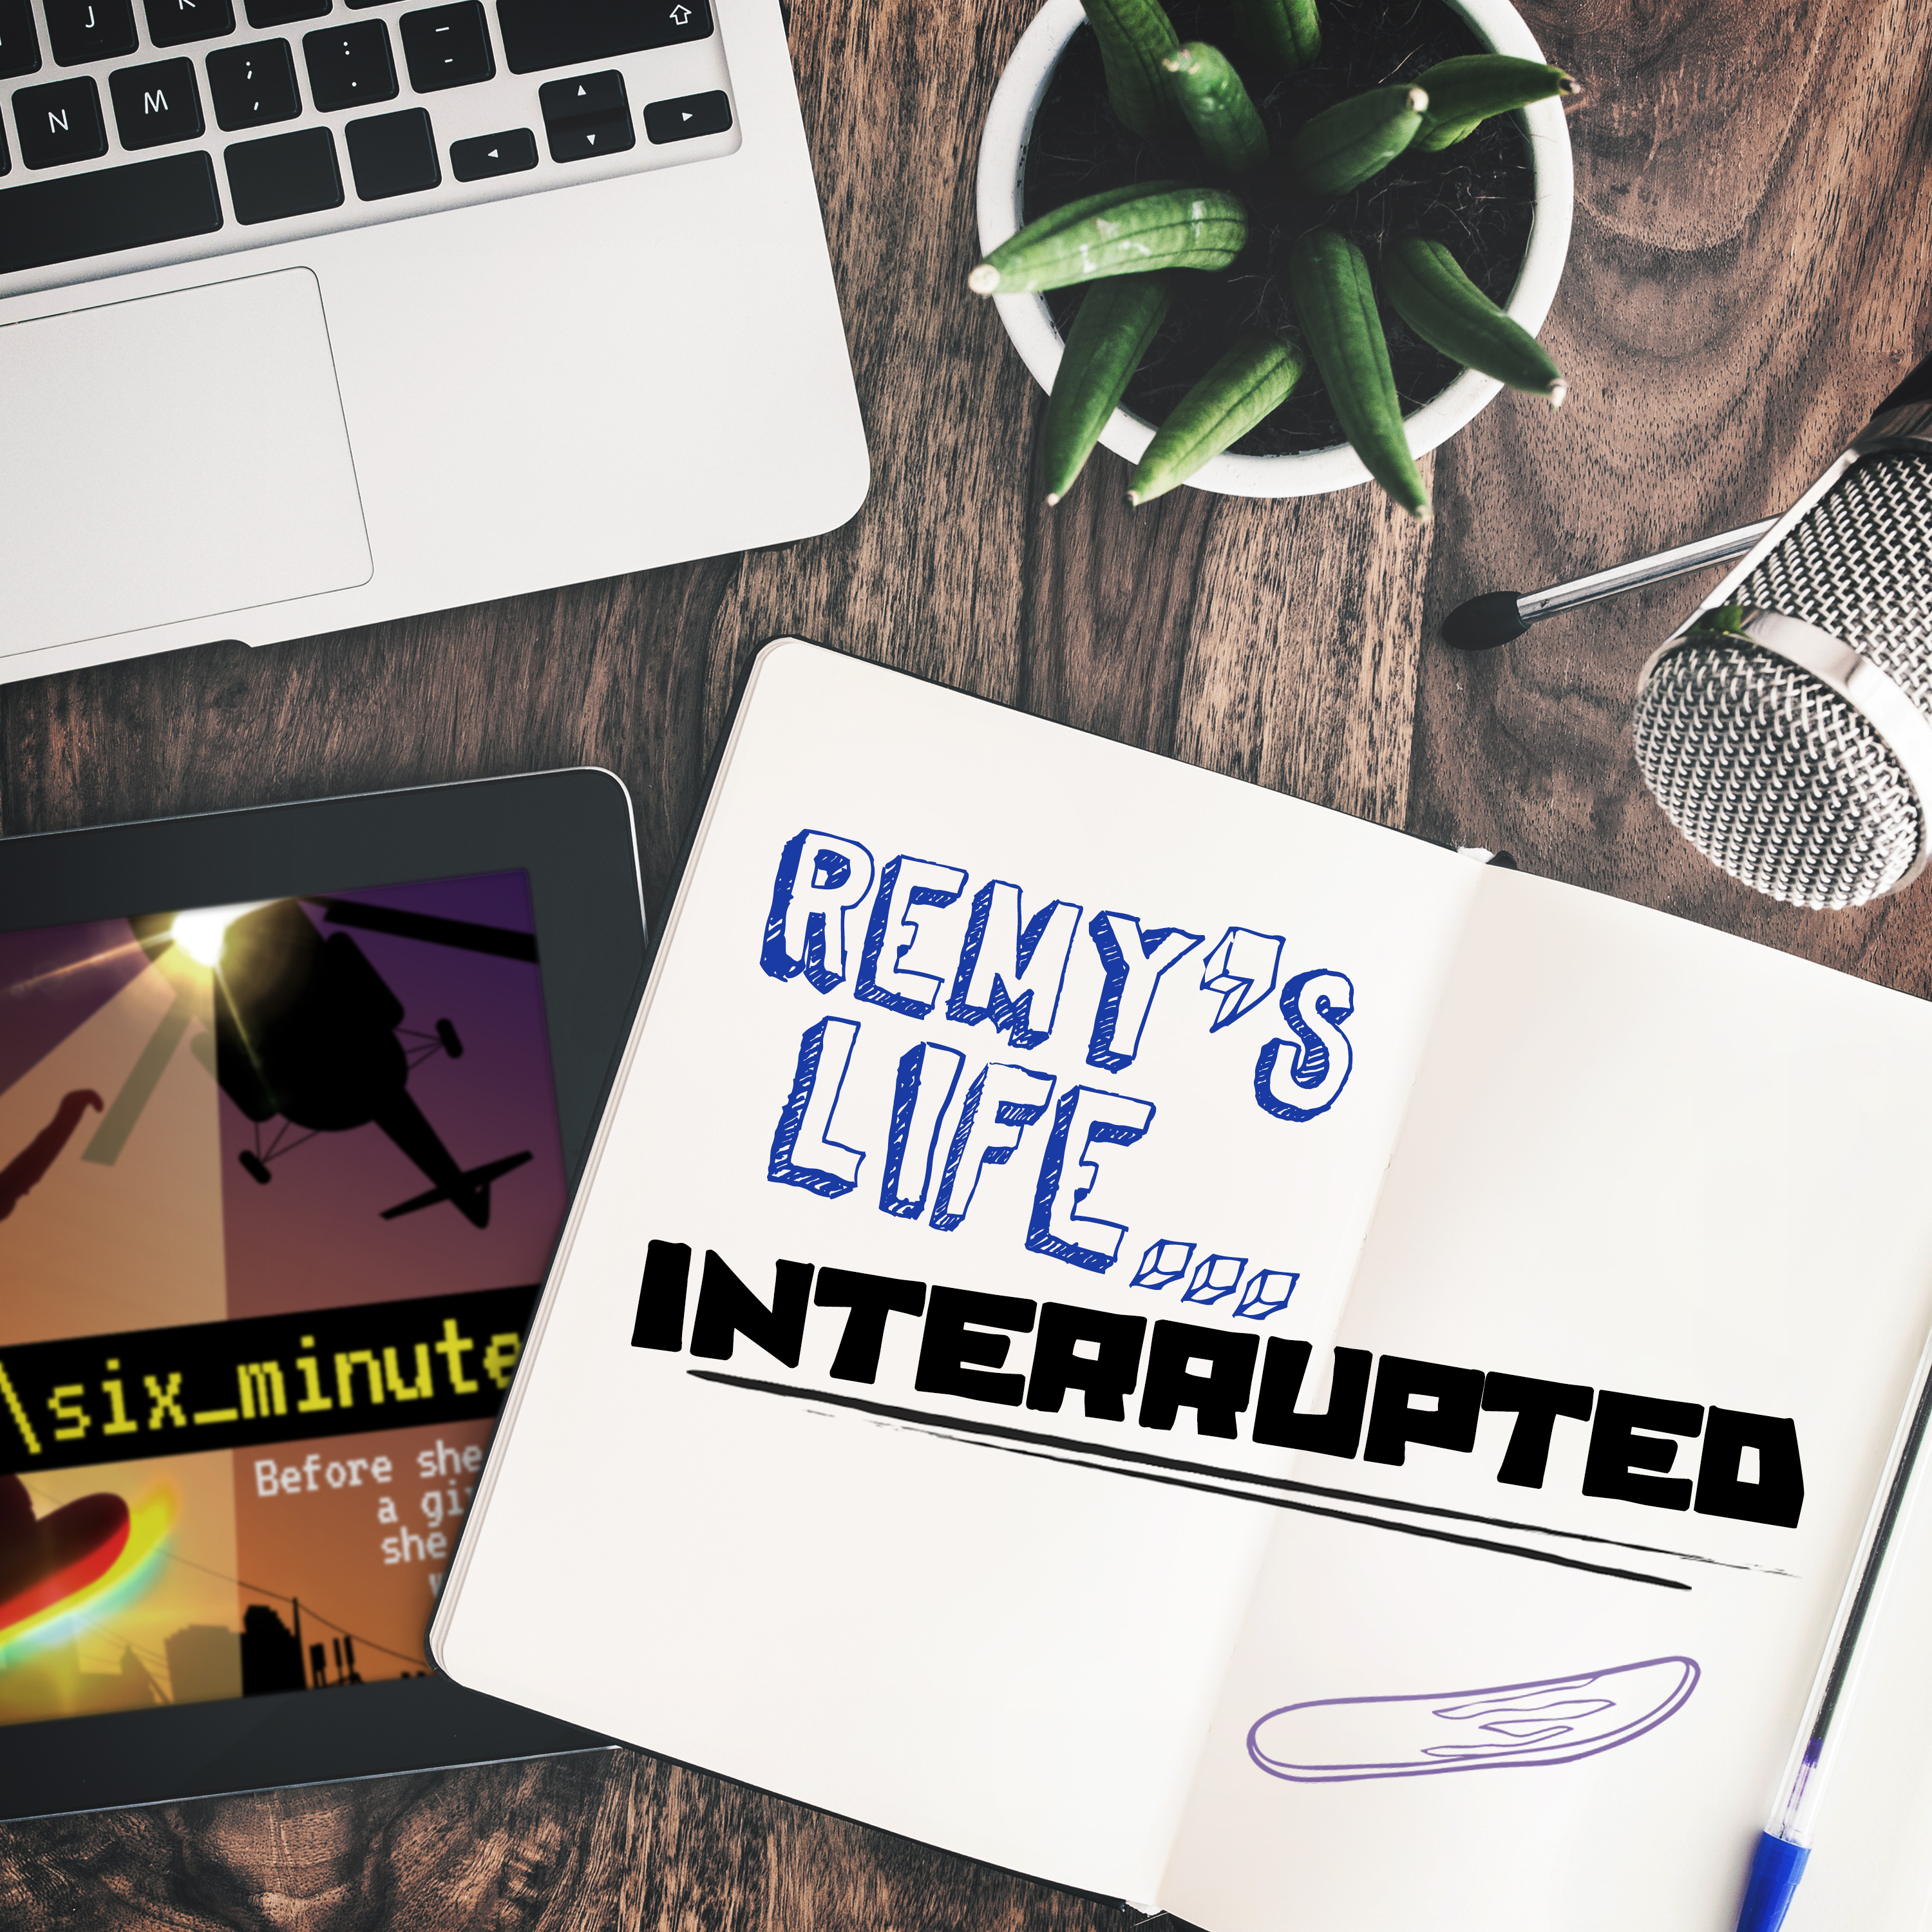 Remy's Life Interrupted: EP61